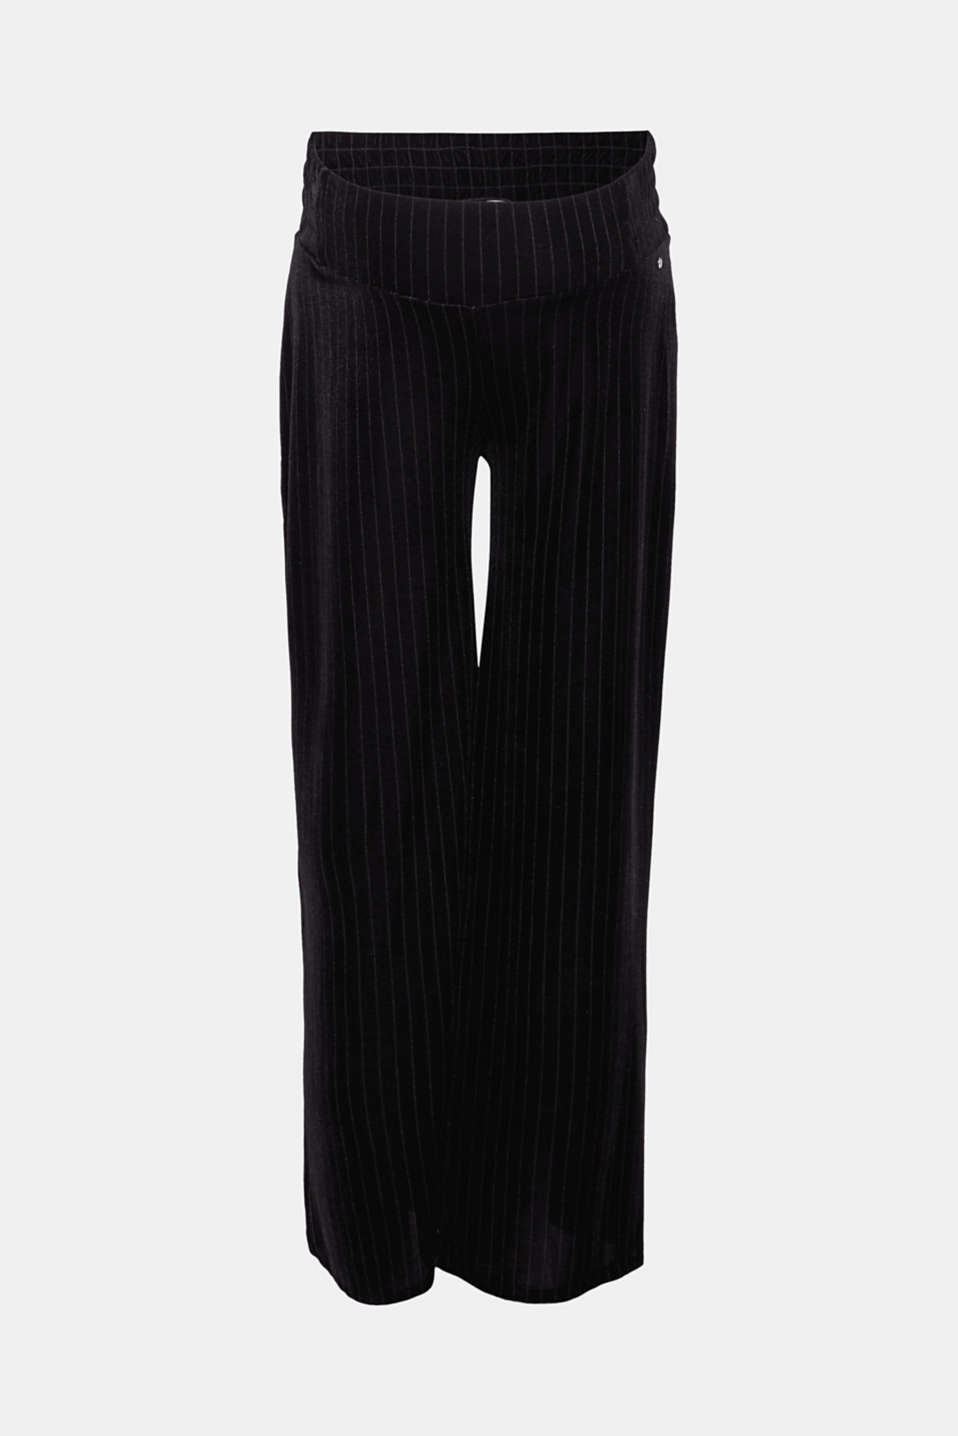 Esprit - Stretchy, velvet trousers with stripes and an under-bump waistband